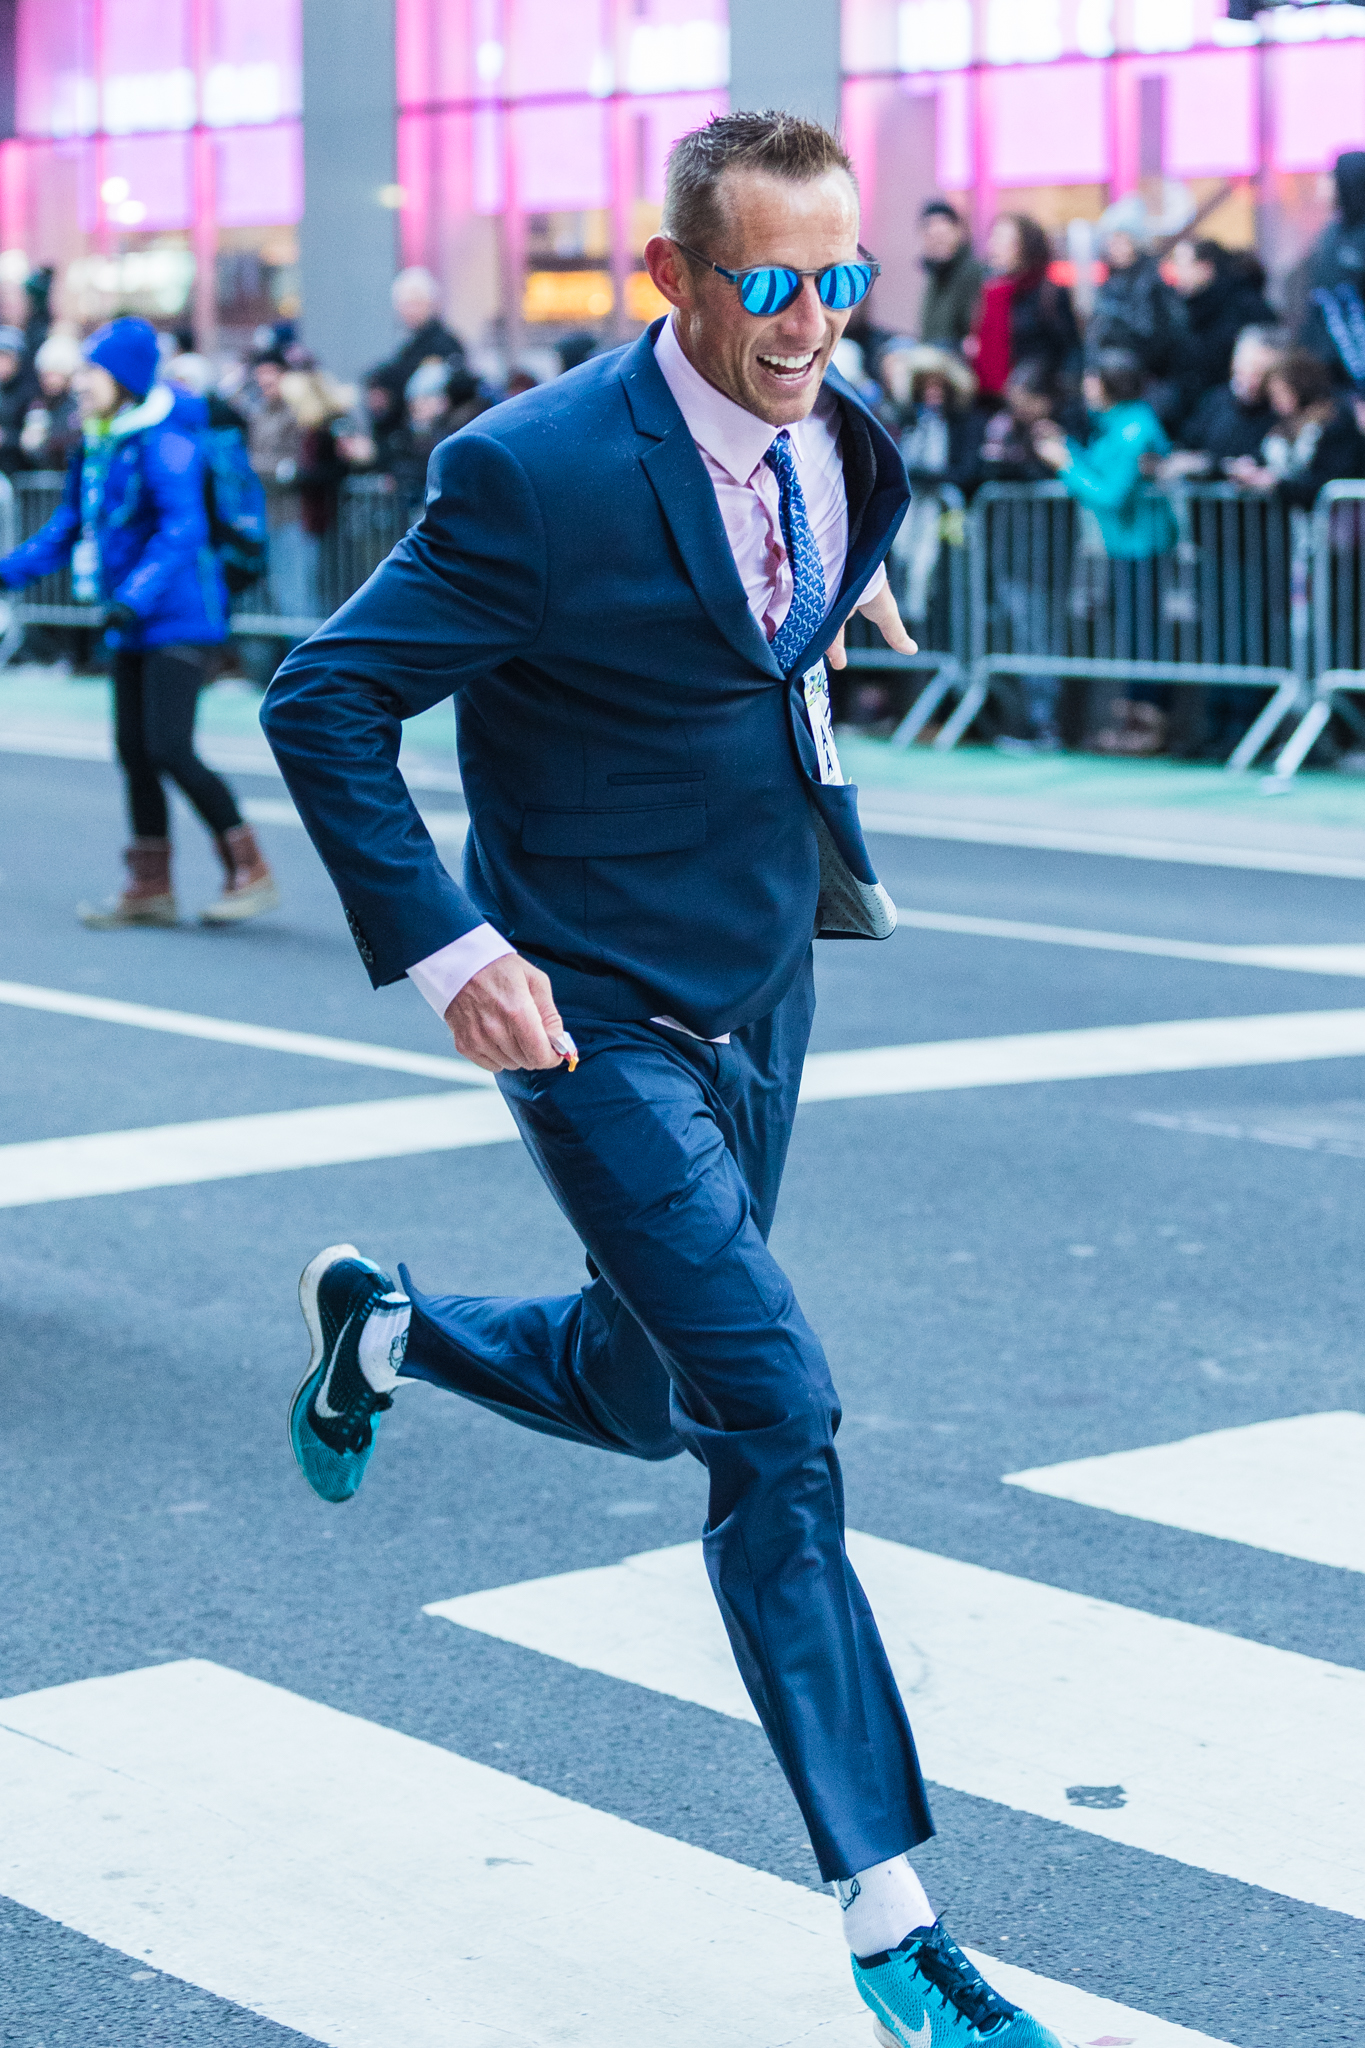 He completed the race in 1:11:36, good enough to beat the current Guiness World Record for Fastest Half-Marathon in a suit.